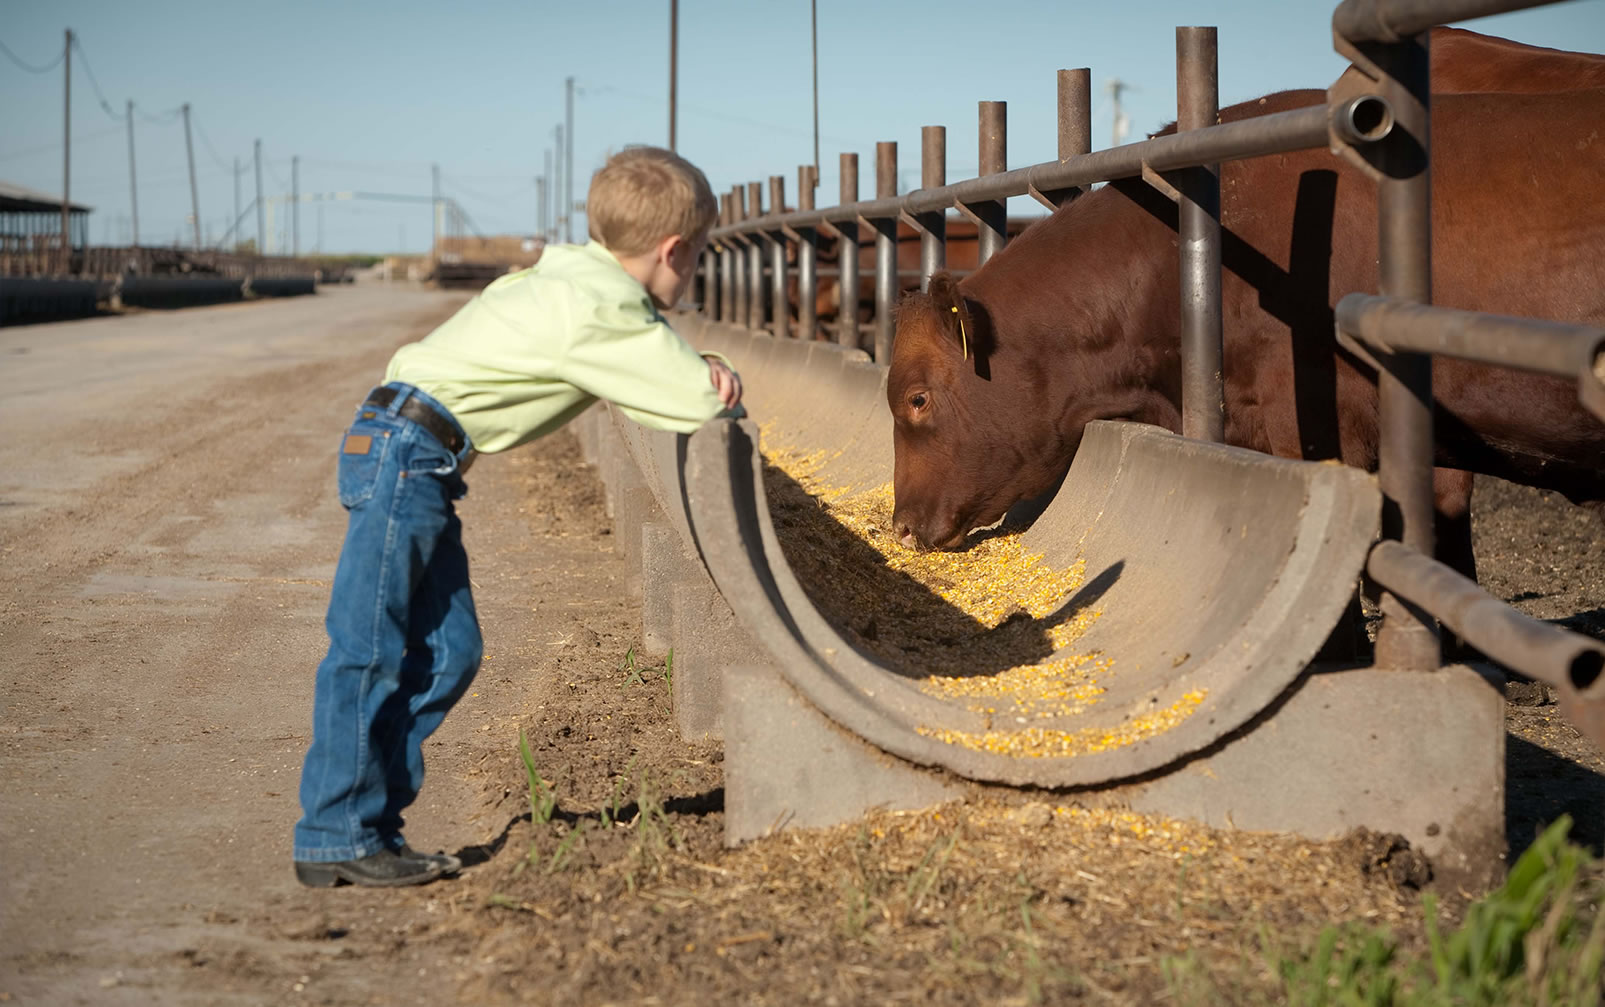 Boy at Feedyard